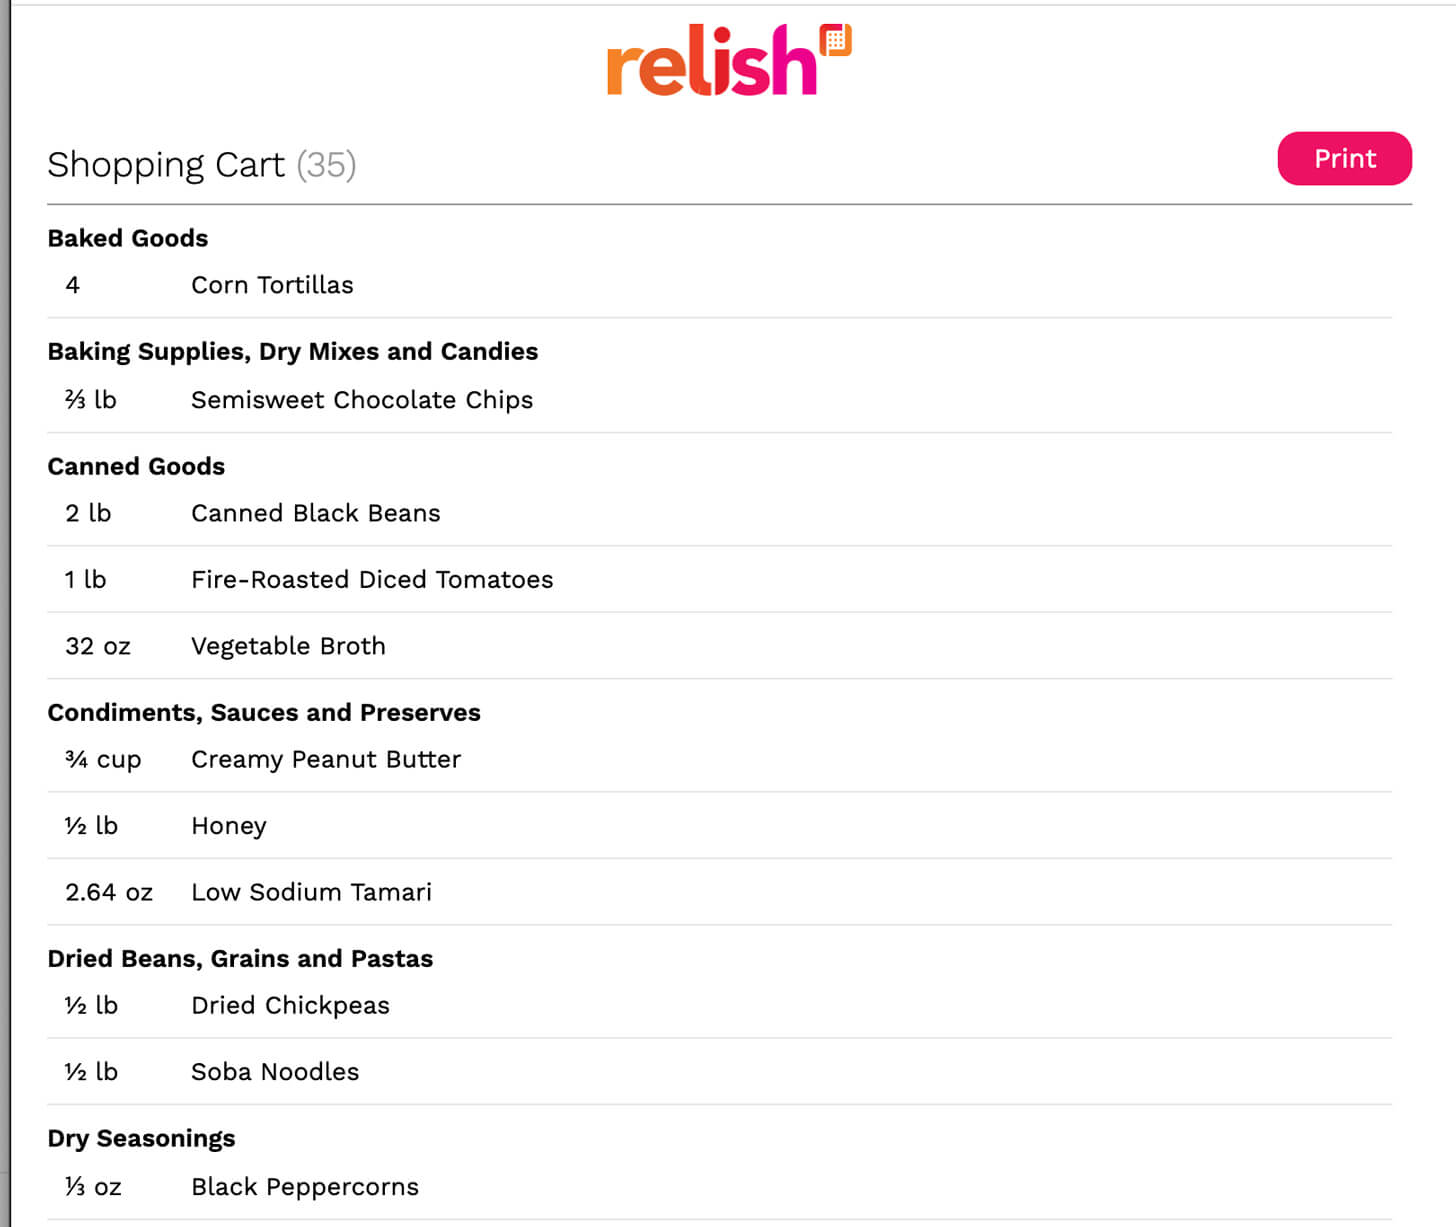 relish print feature